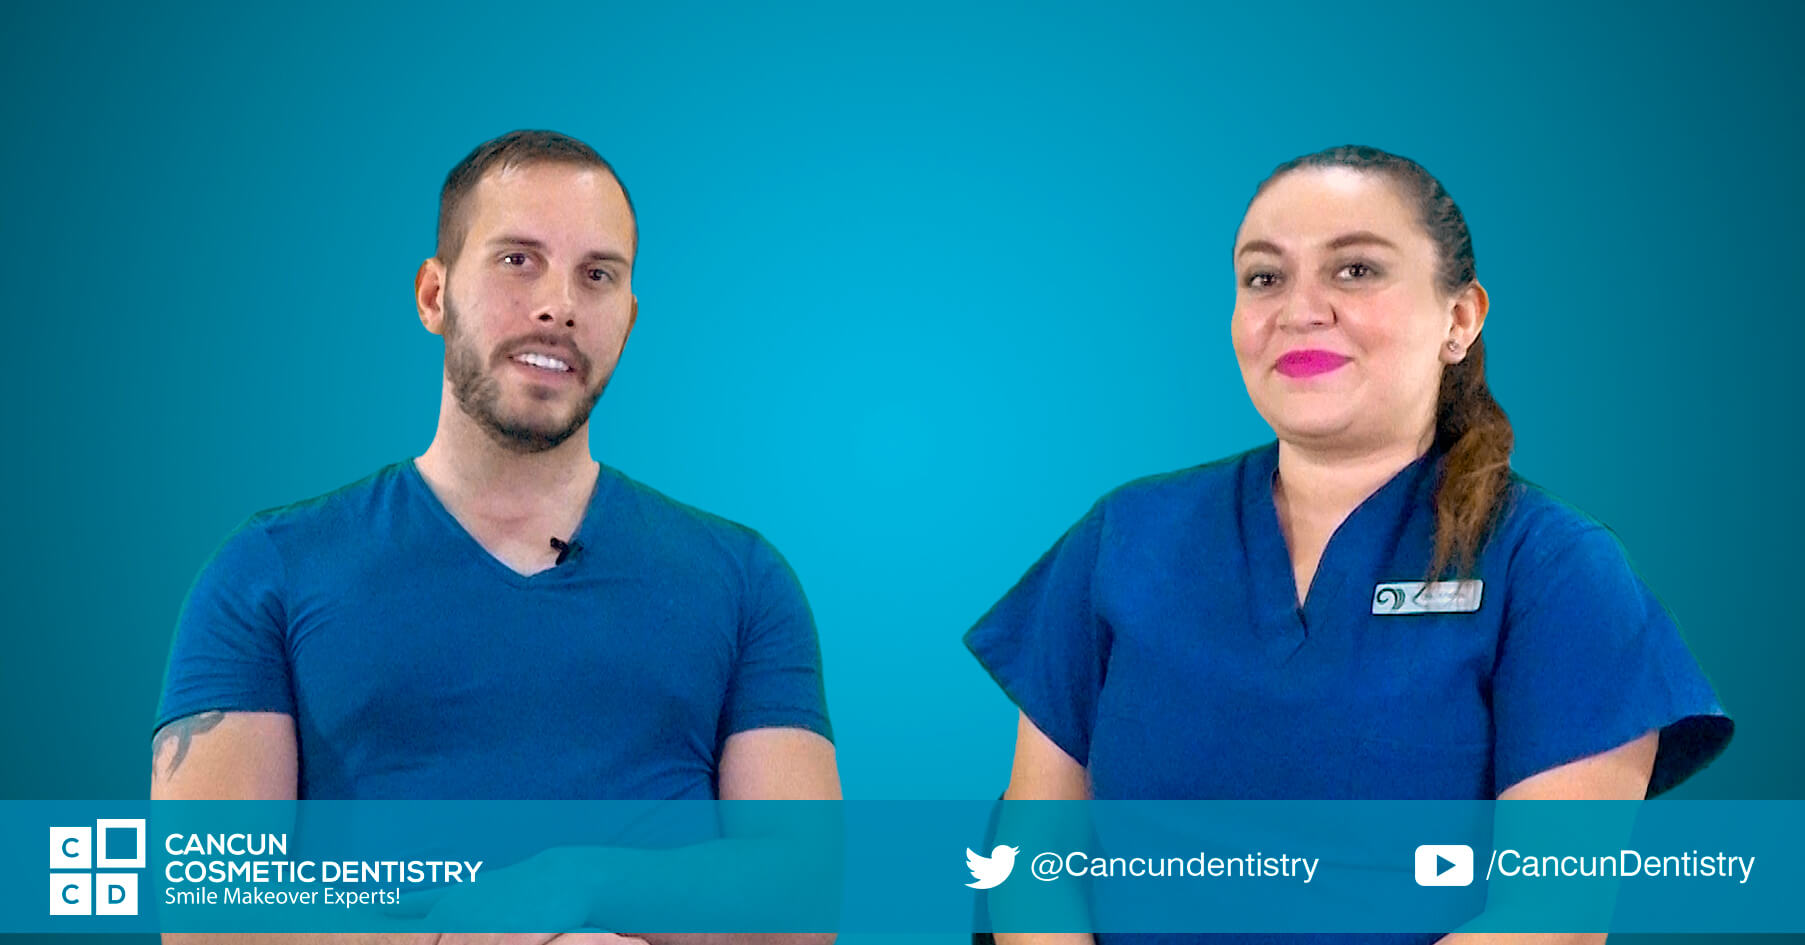 Nicholas' Testimonial: A Smile Makeover with Crowns in Cancun